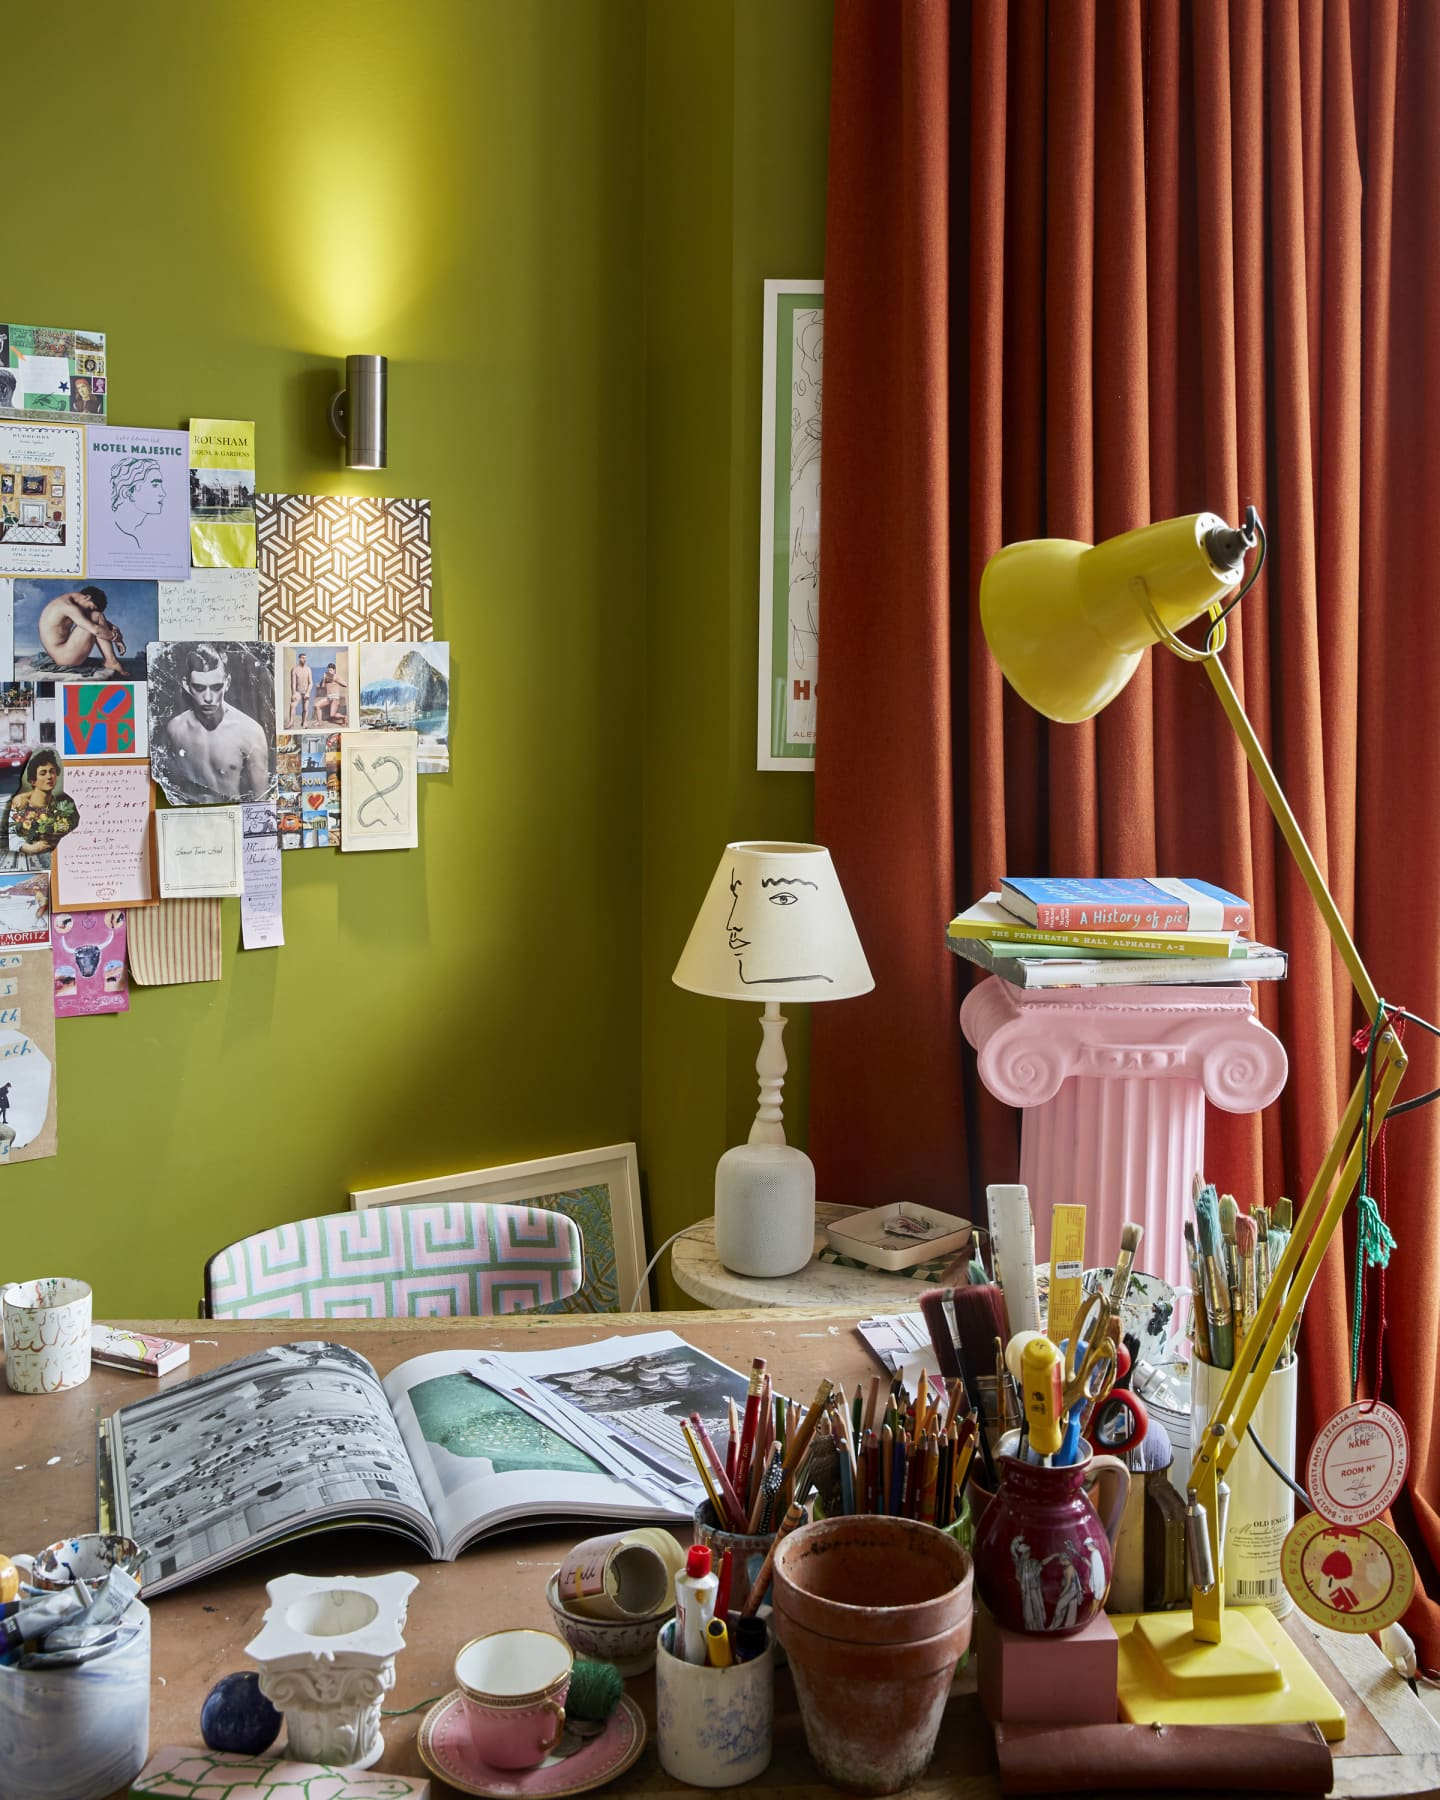 Messy books and several lamps on a table